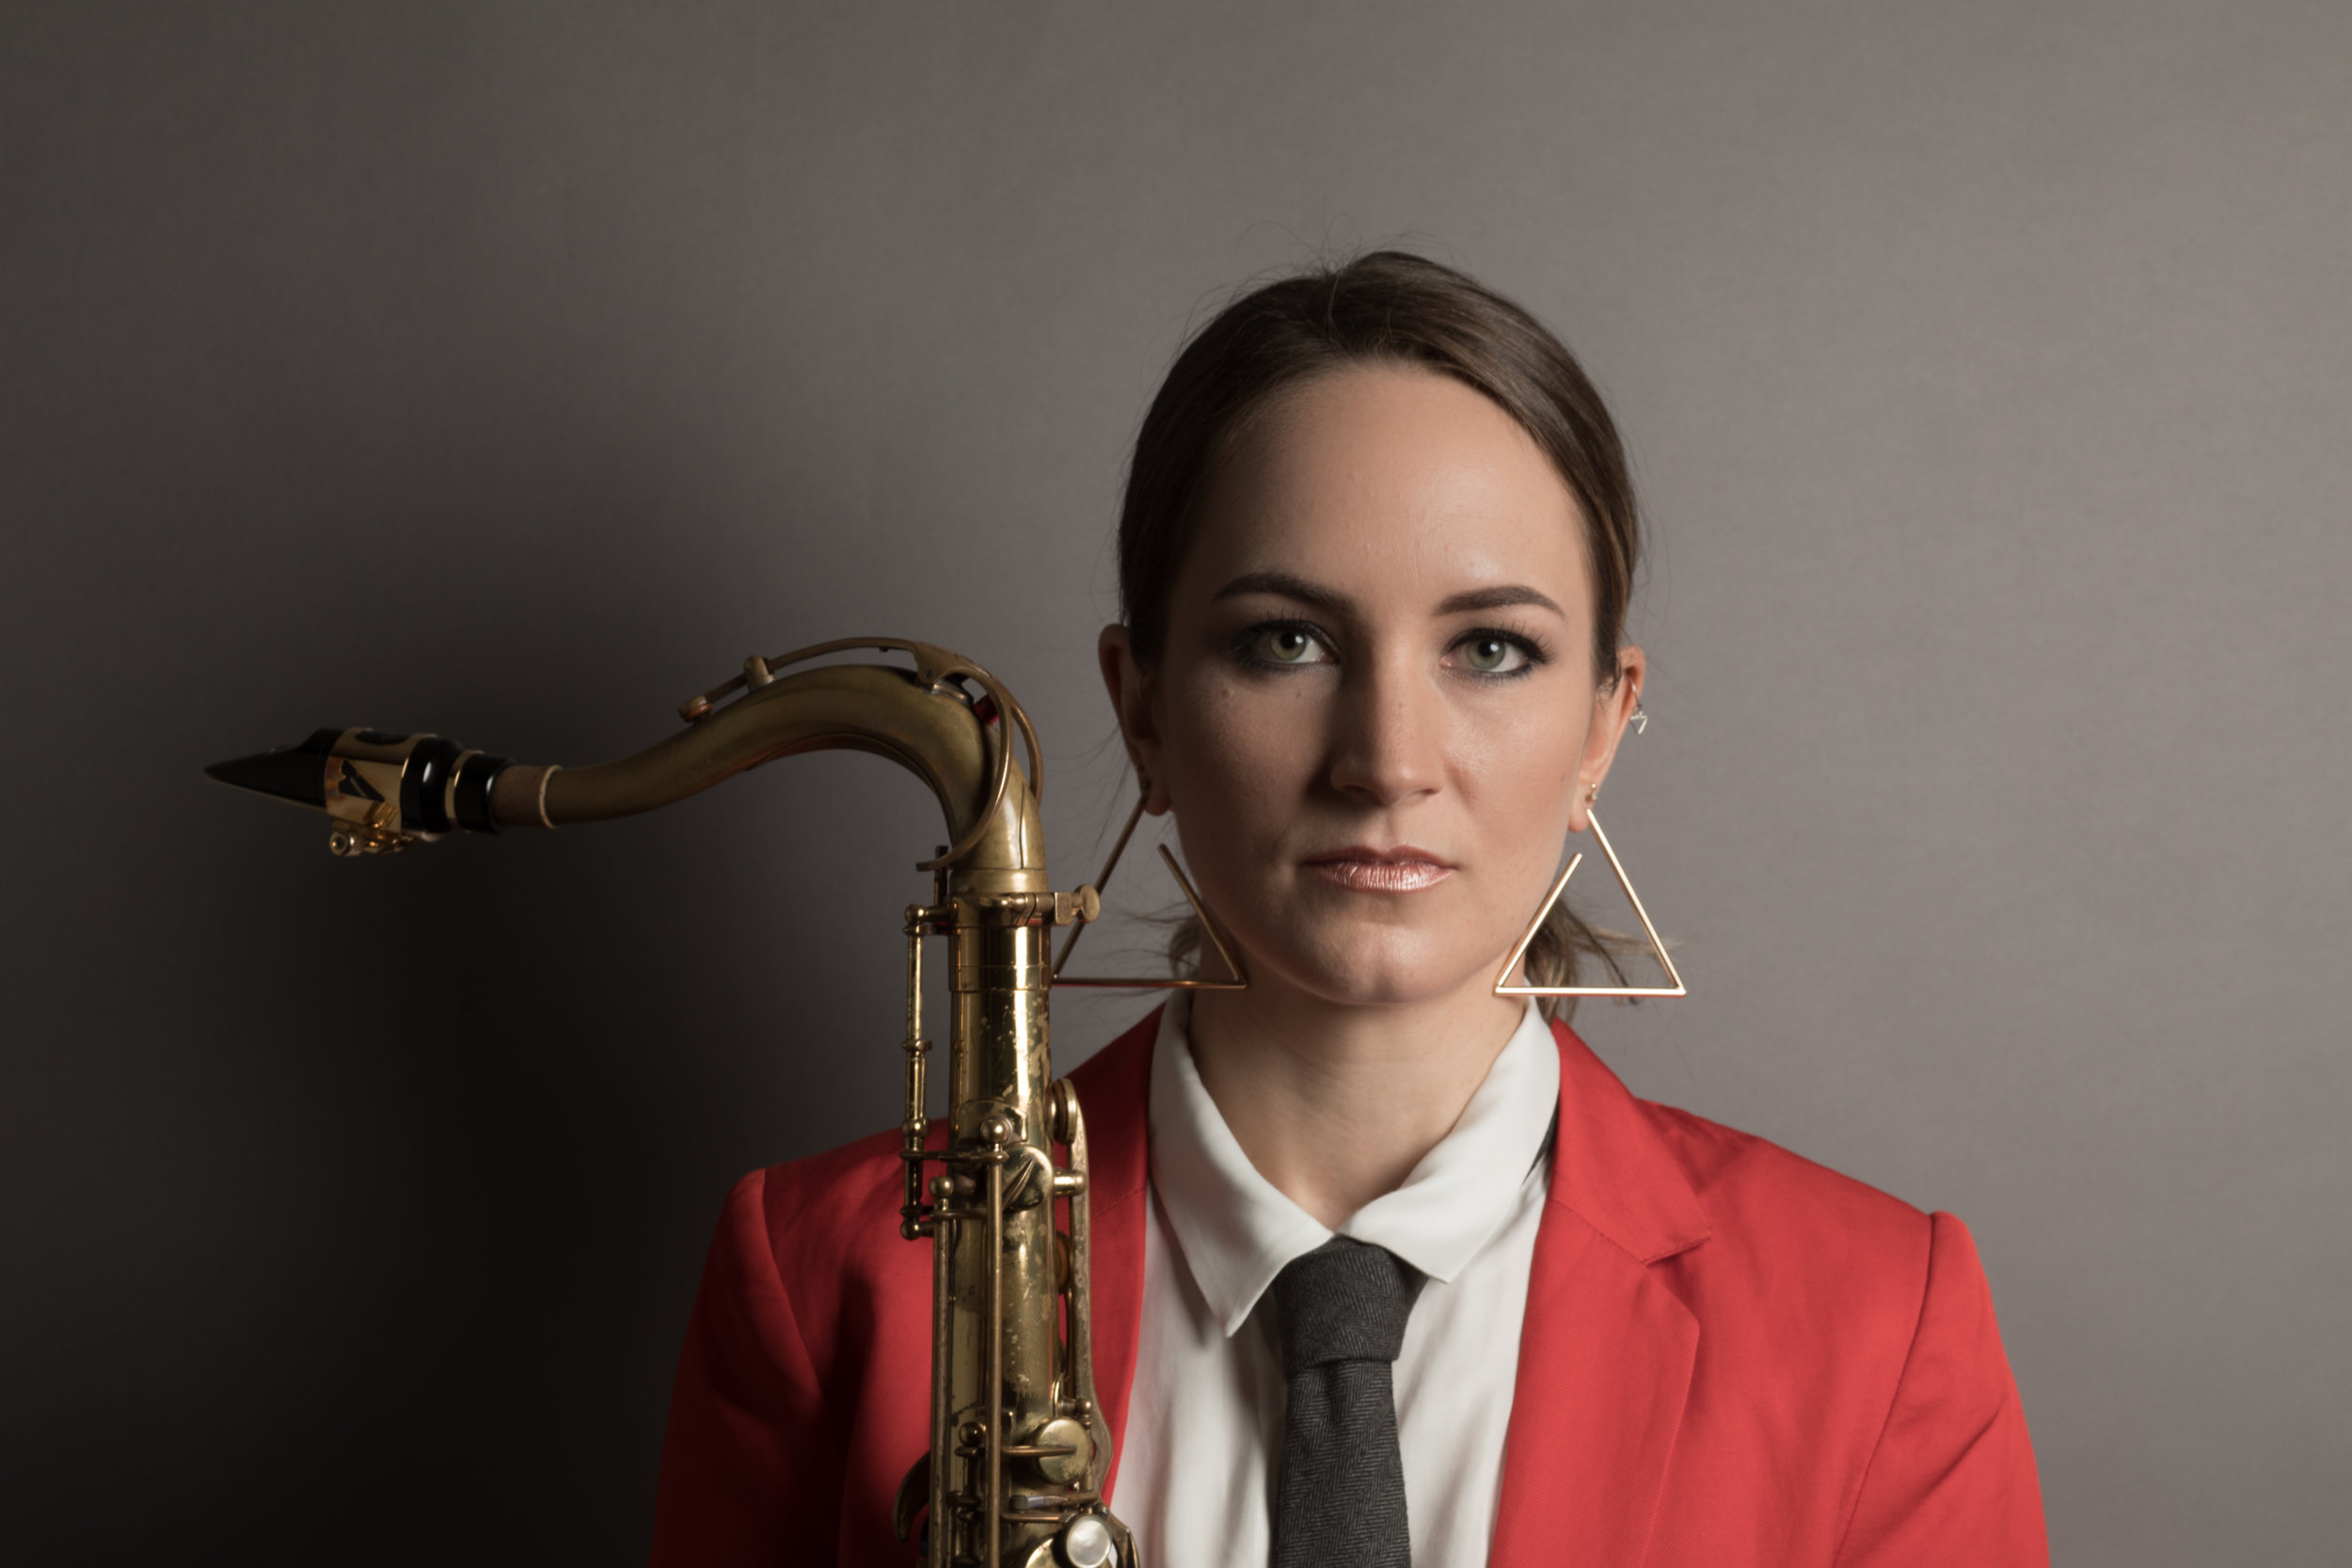 Roxy Coss - Saxophonist, Composer, Educator, WIJO Founder